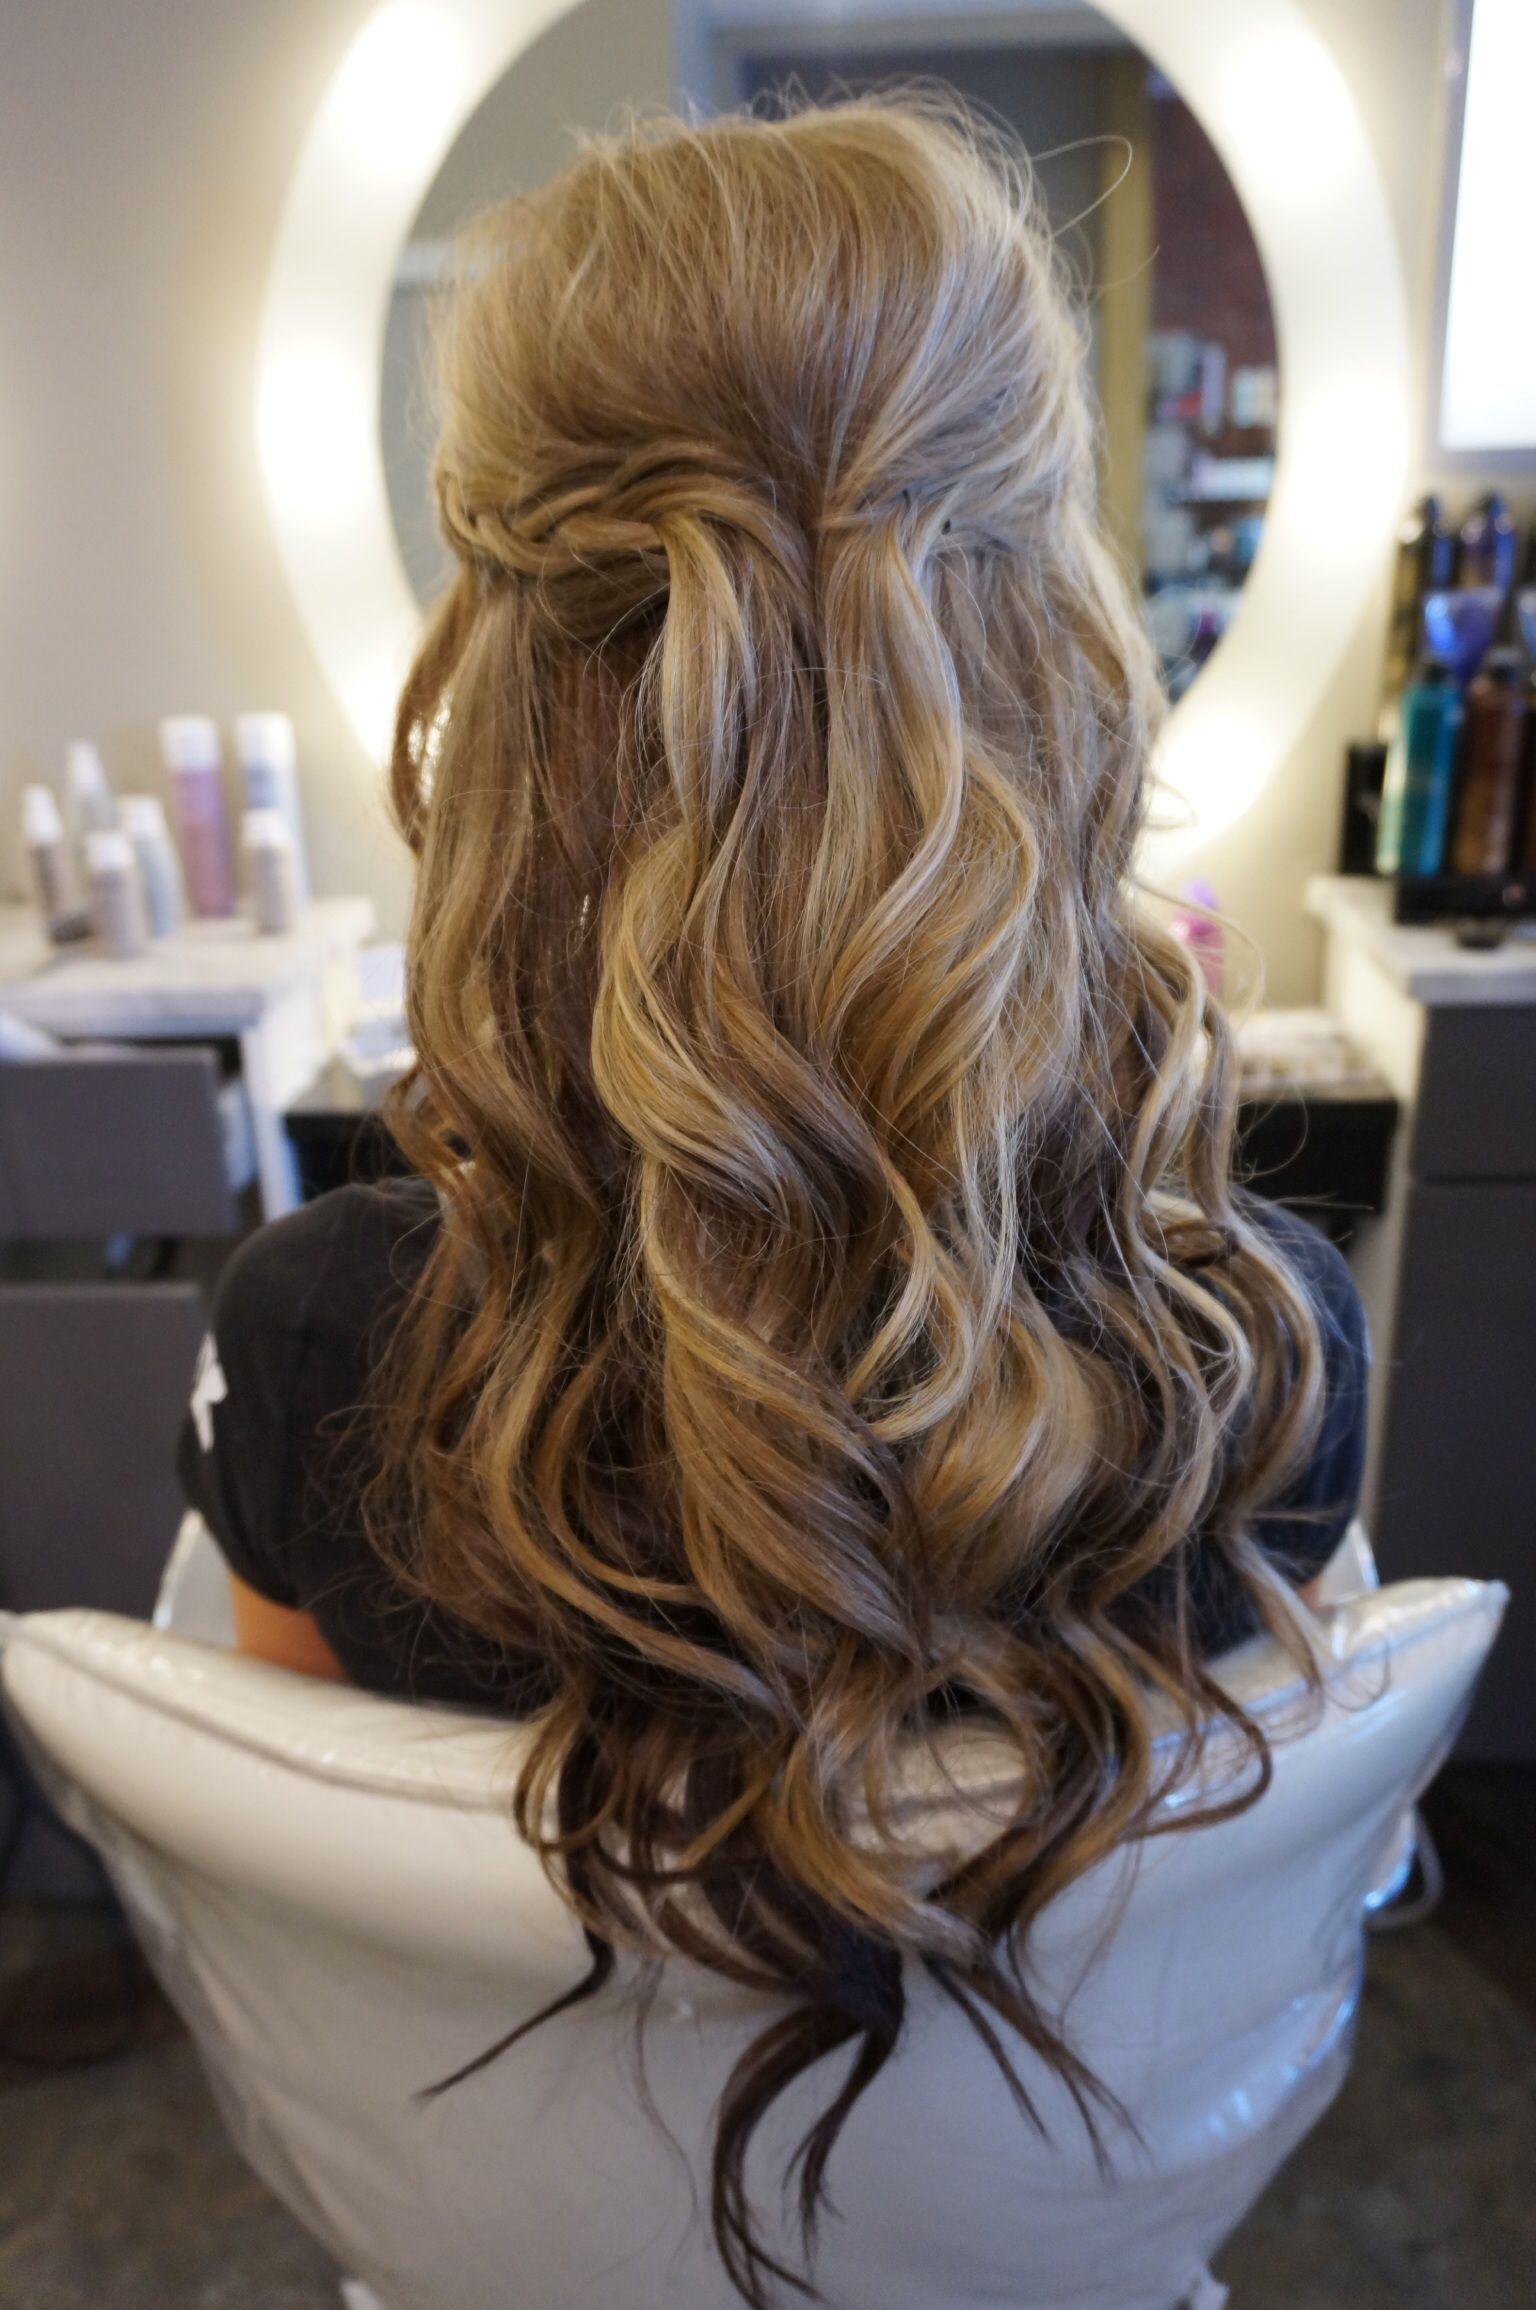 long hair with loose curls perfect half up half down style